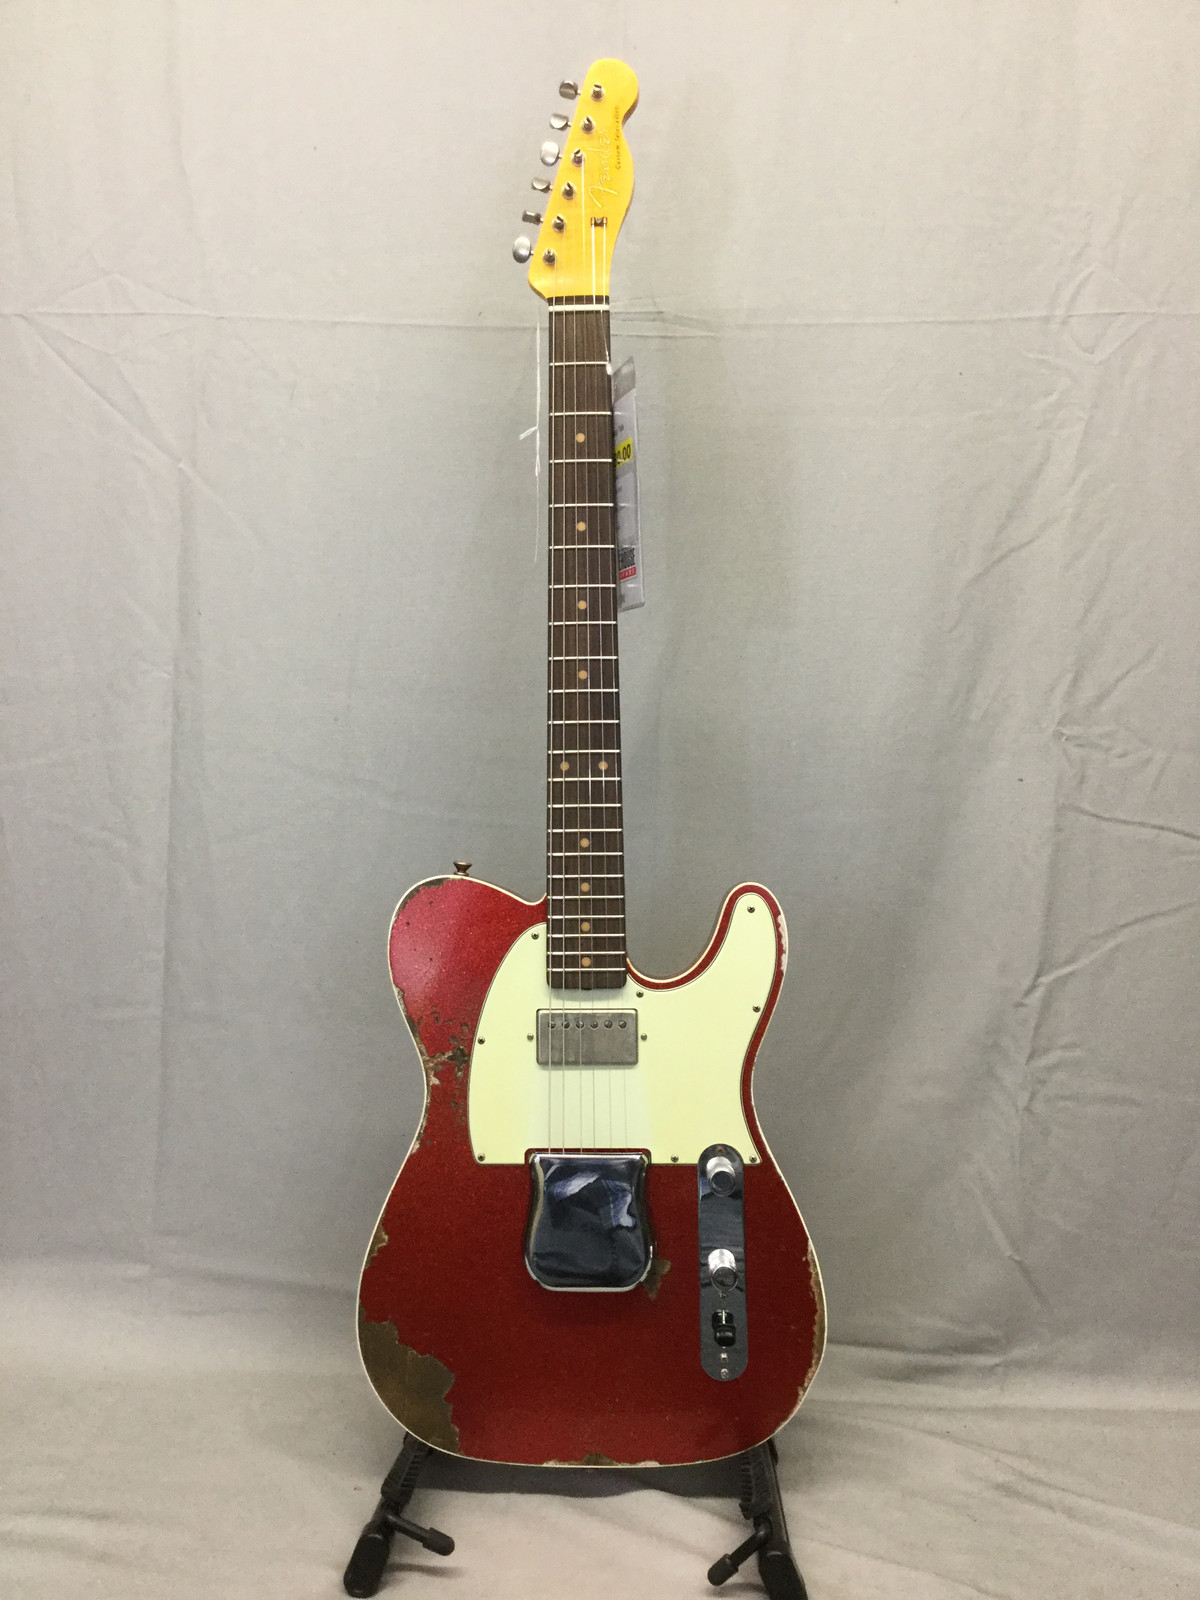 Fender Custom Shop 60s Super Faded/Aged Red Sparkle HB Tele - $3680